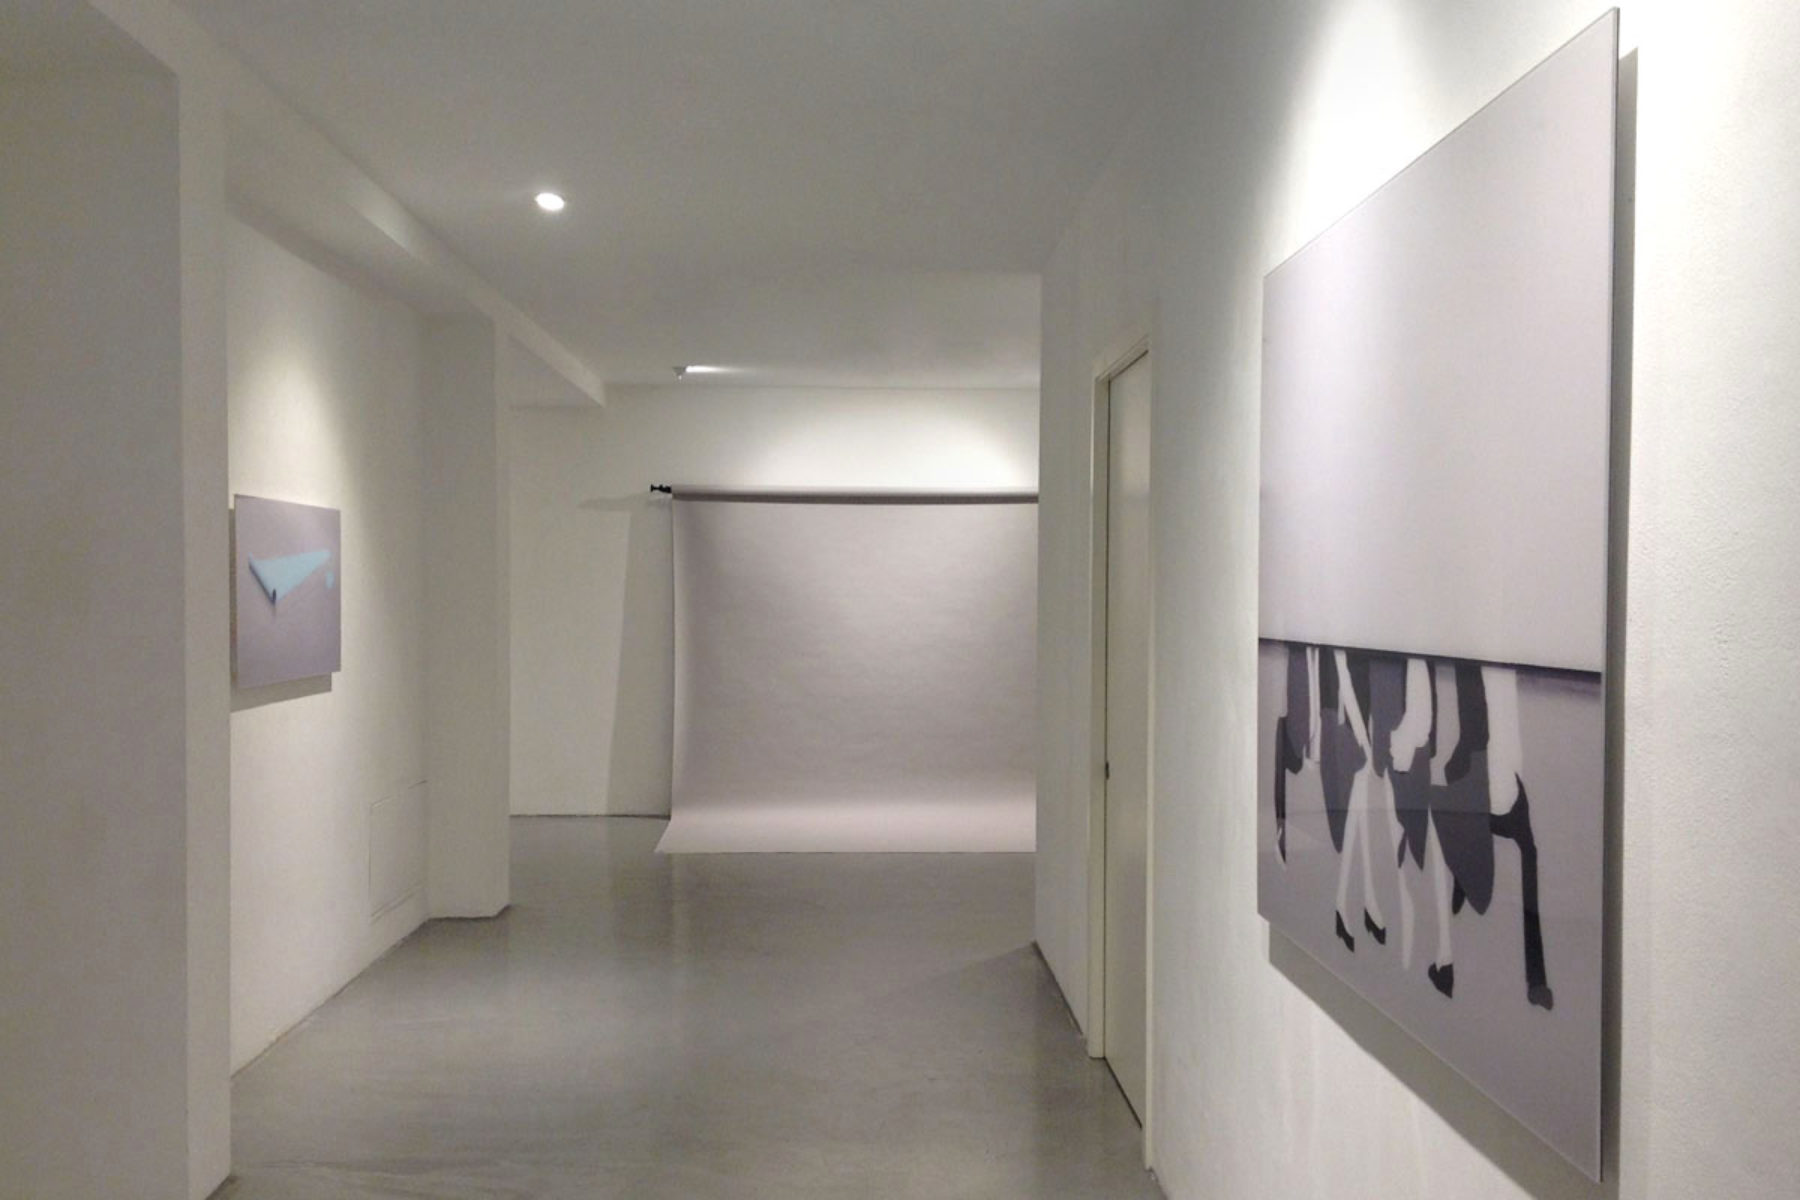 I. Eškinja, Infinity paper, 2013, show view at Deanesi Gallery, 02